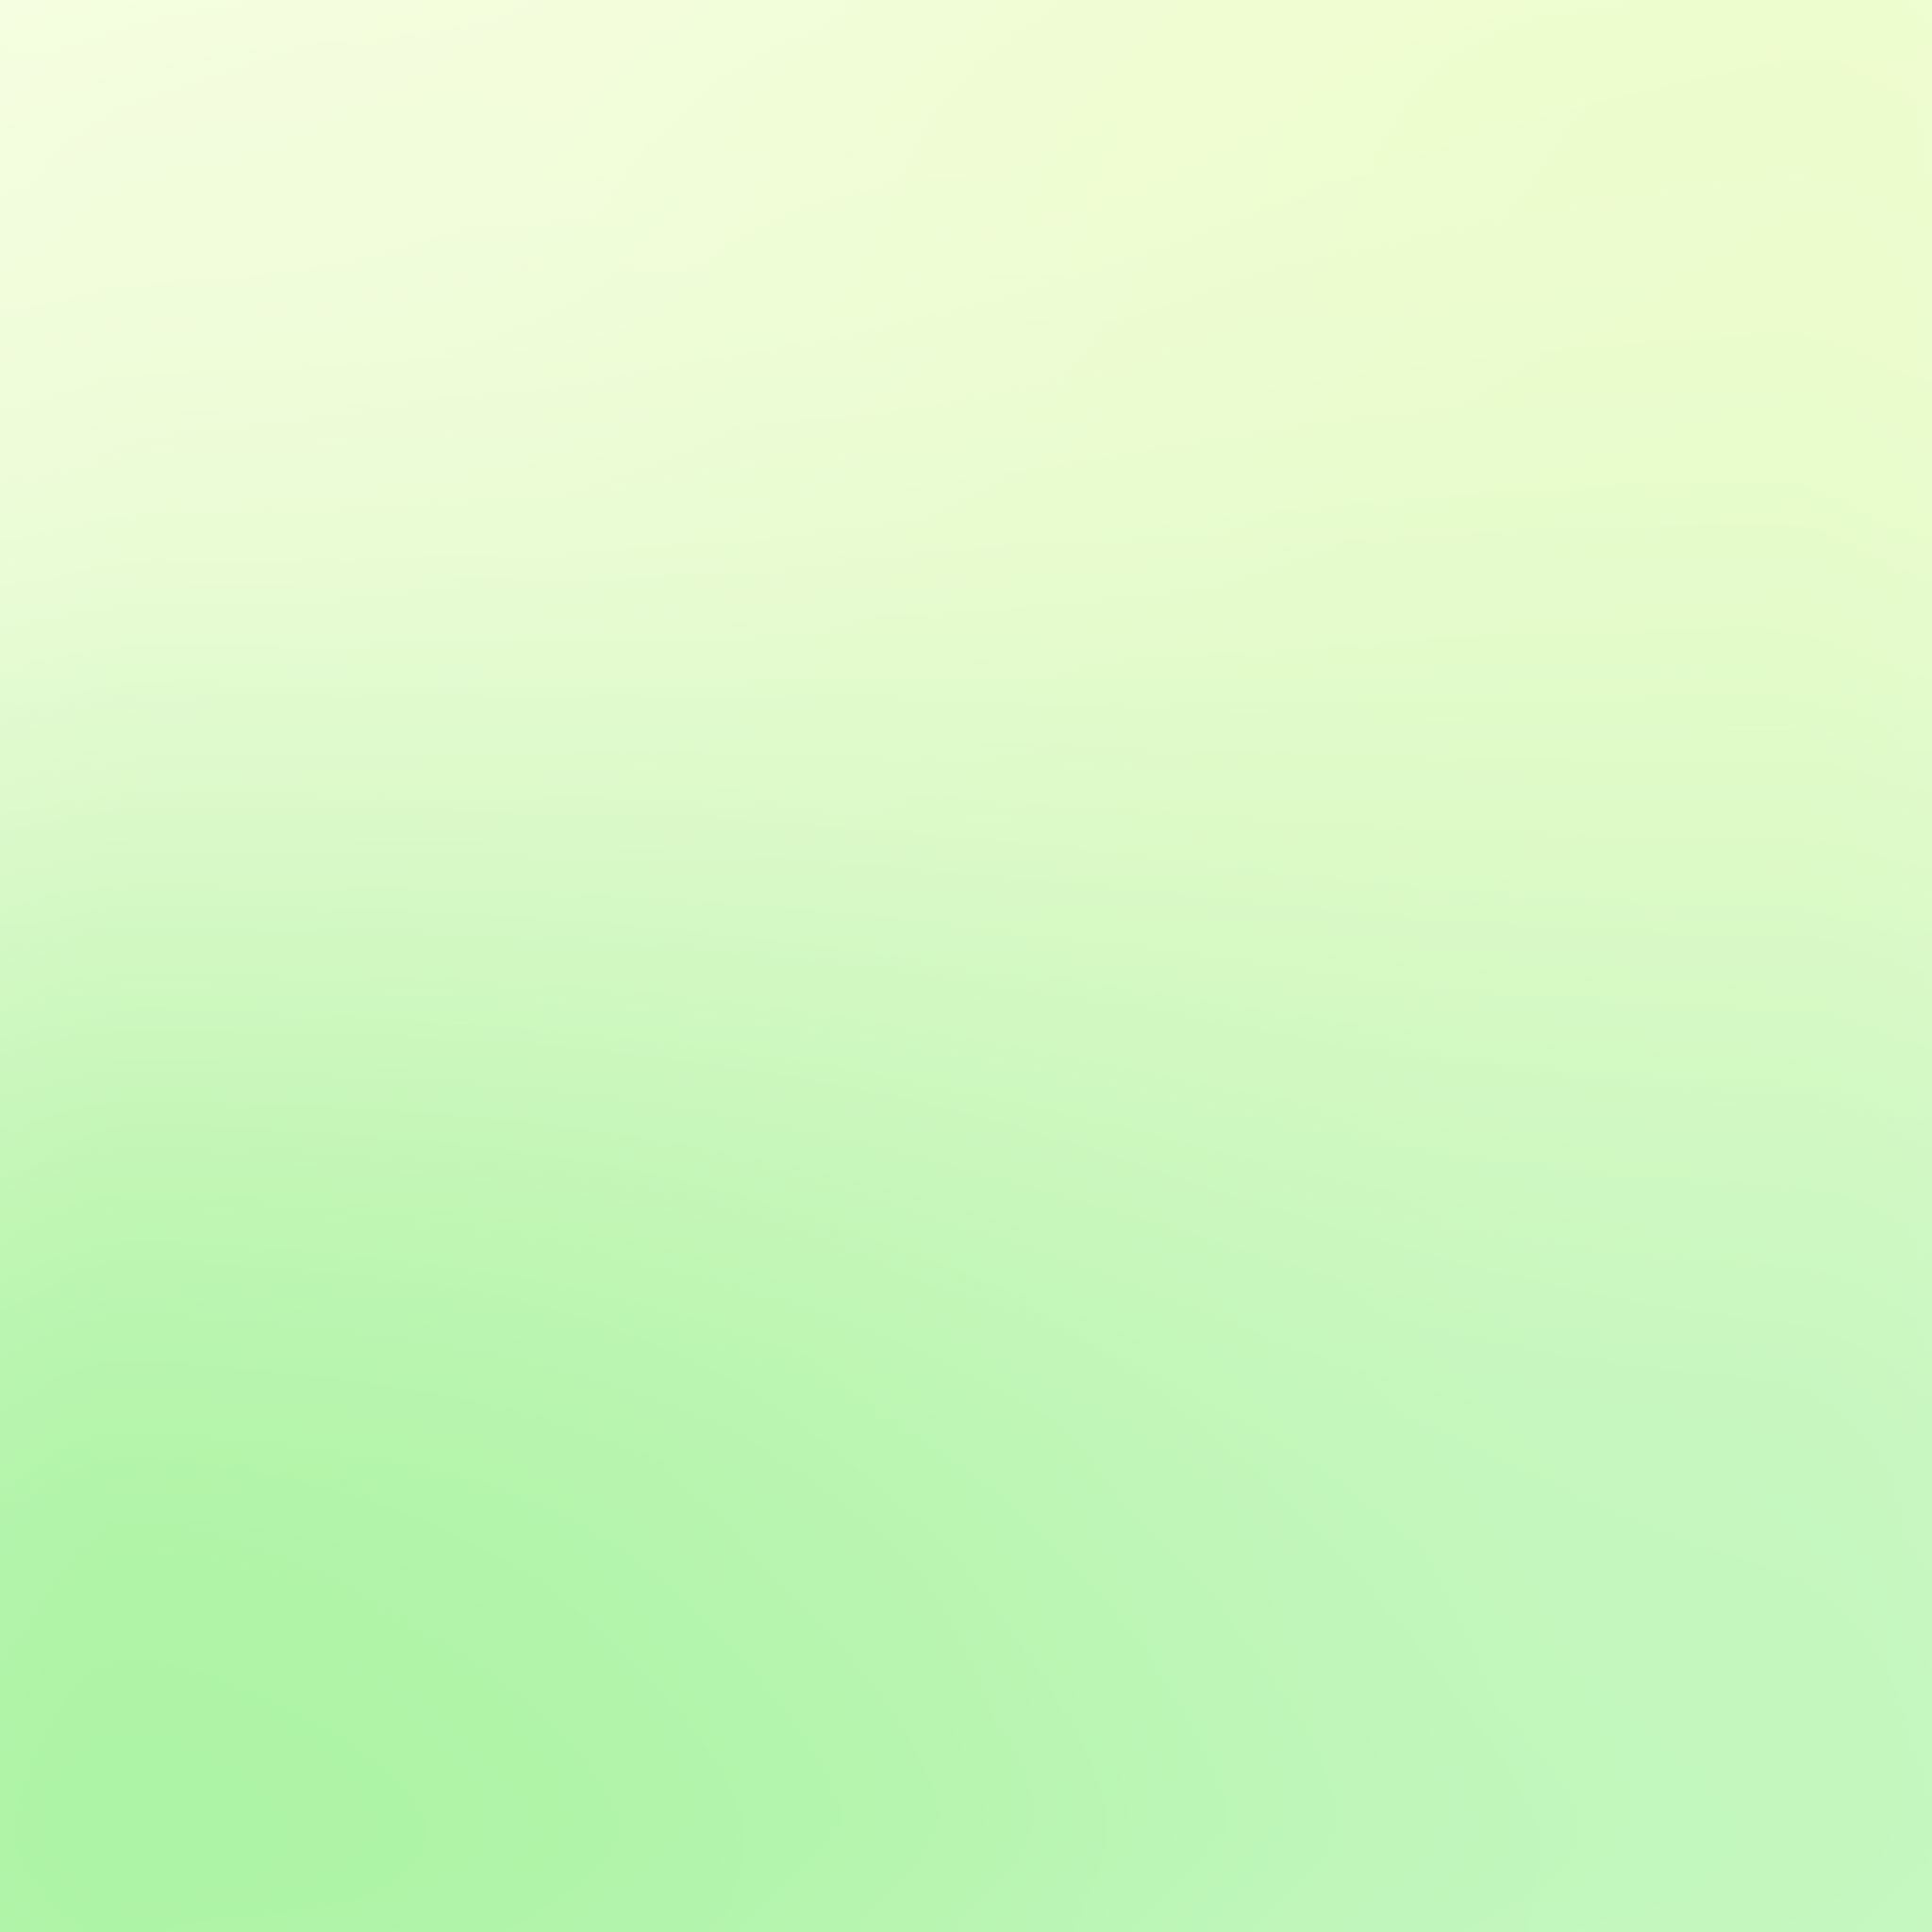 Green Yellow Bur Gradation iPad Air wallpaper